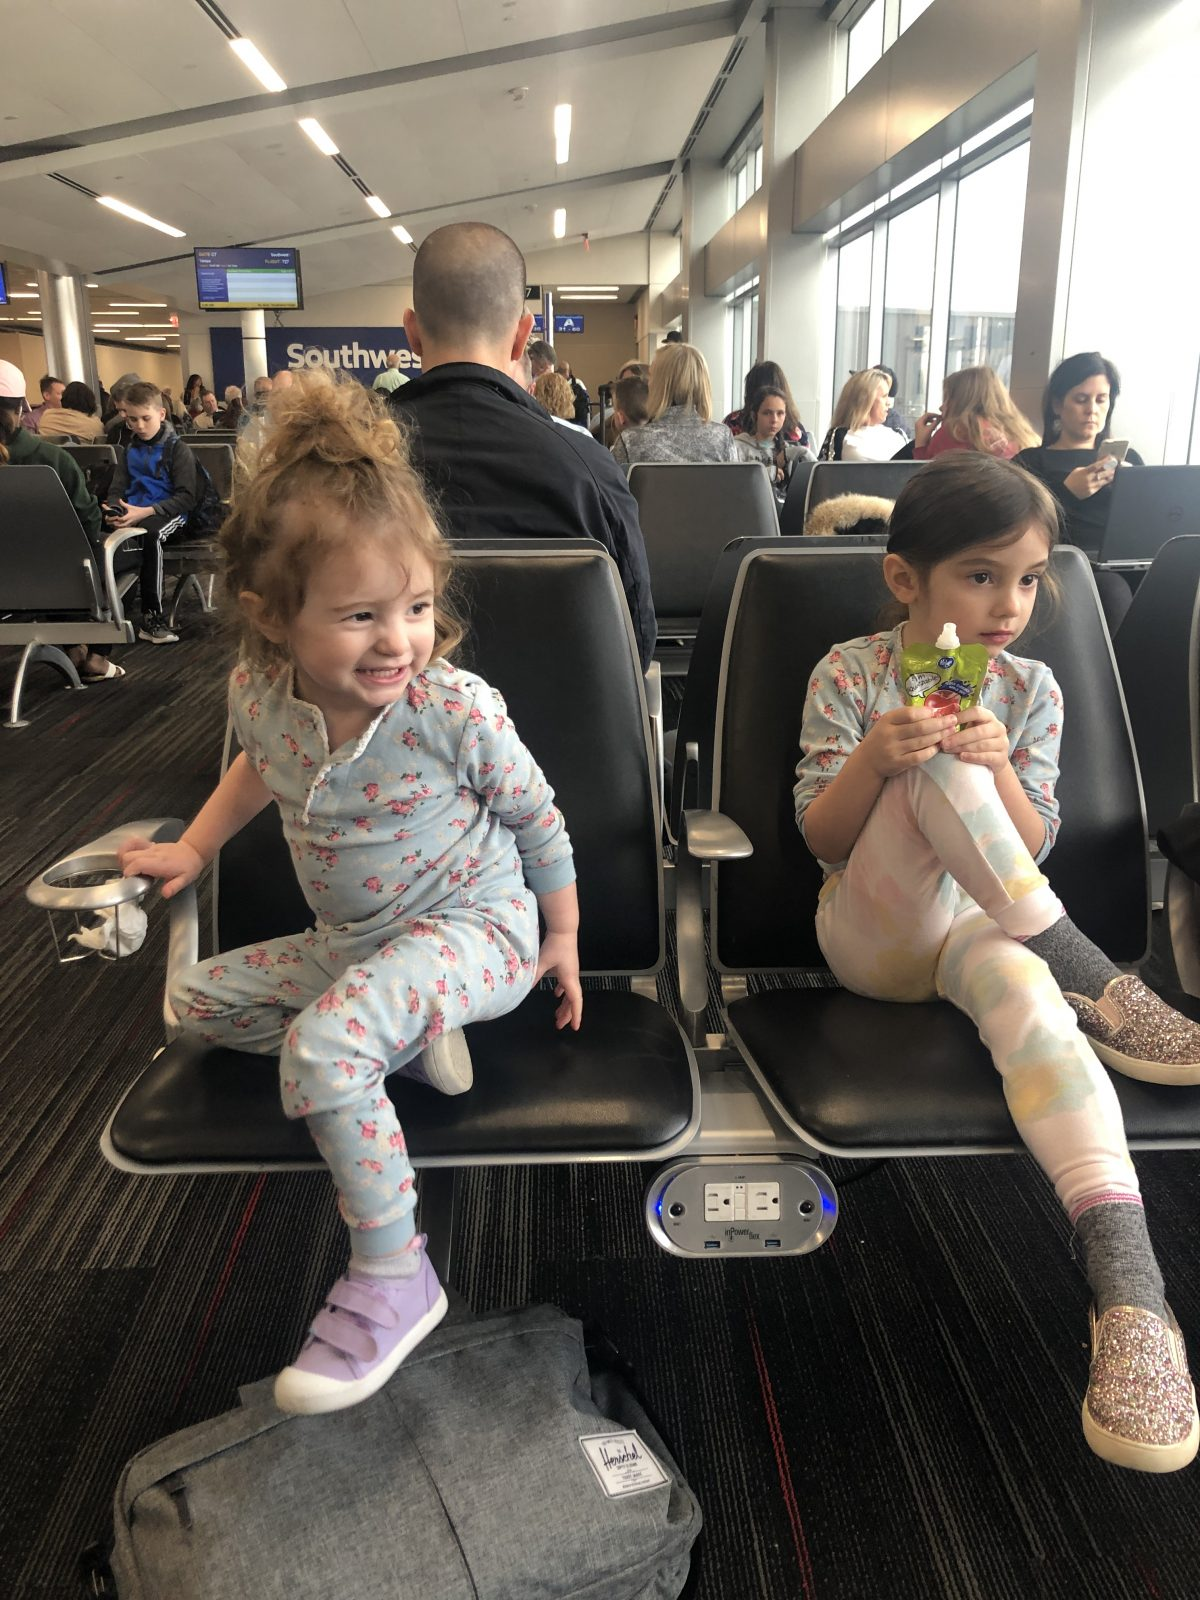 Toddlers waiting to board a plane in seating area